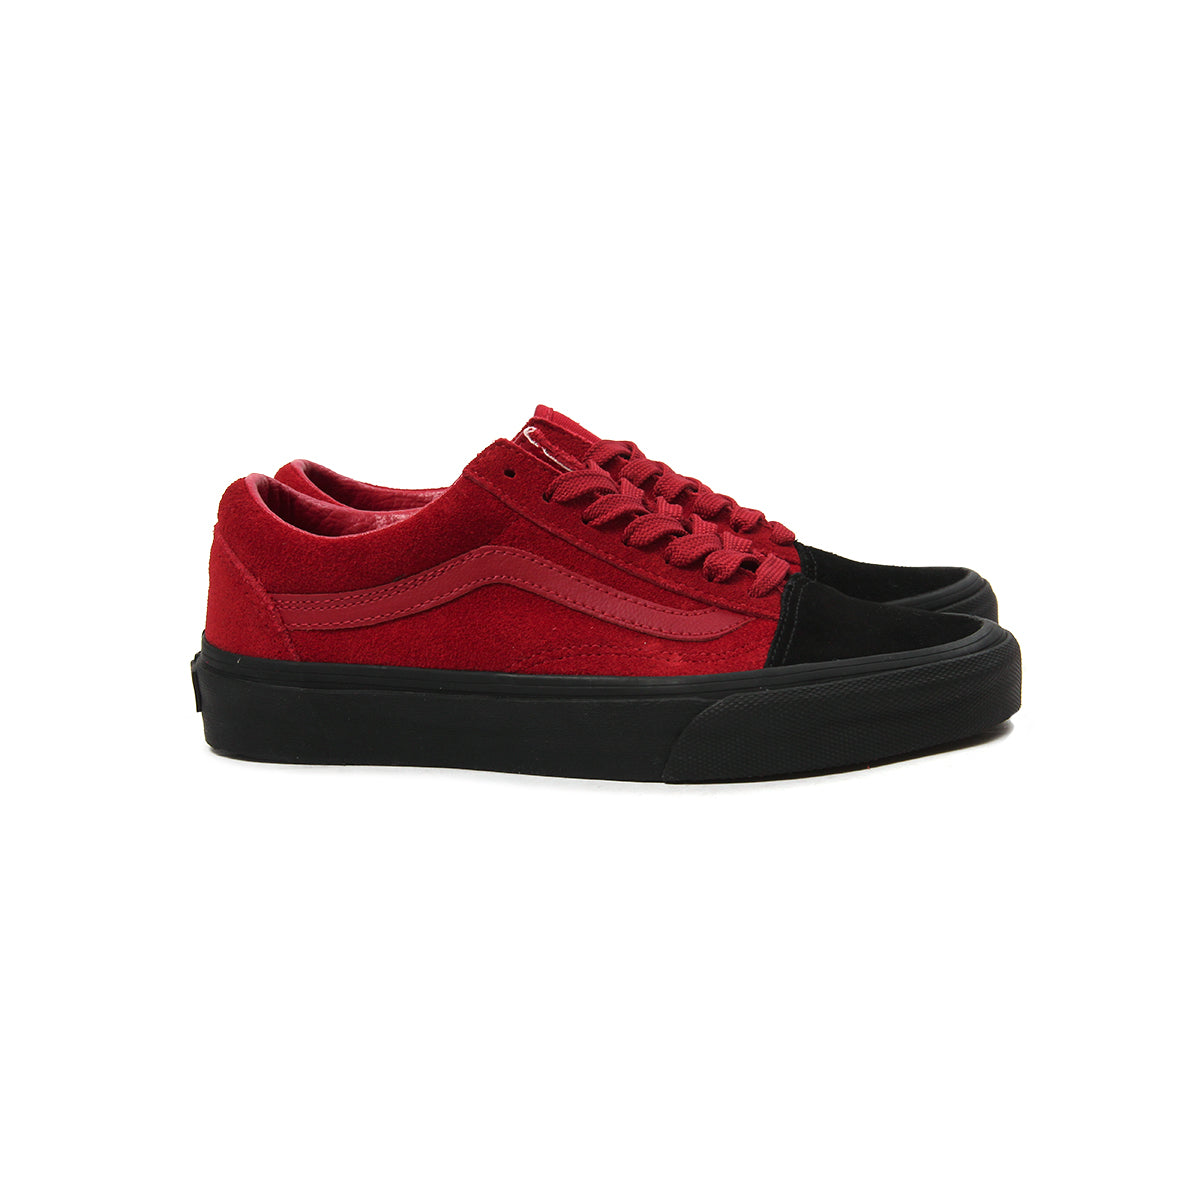 vans high tops red and black